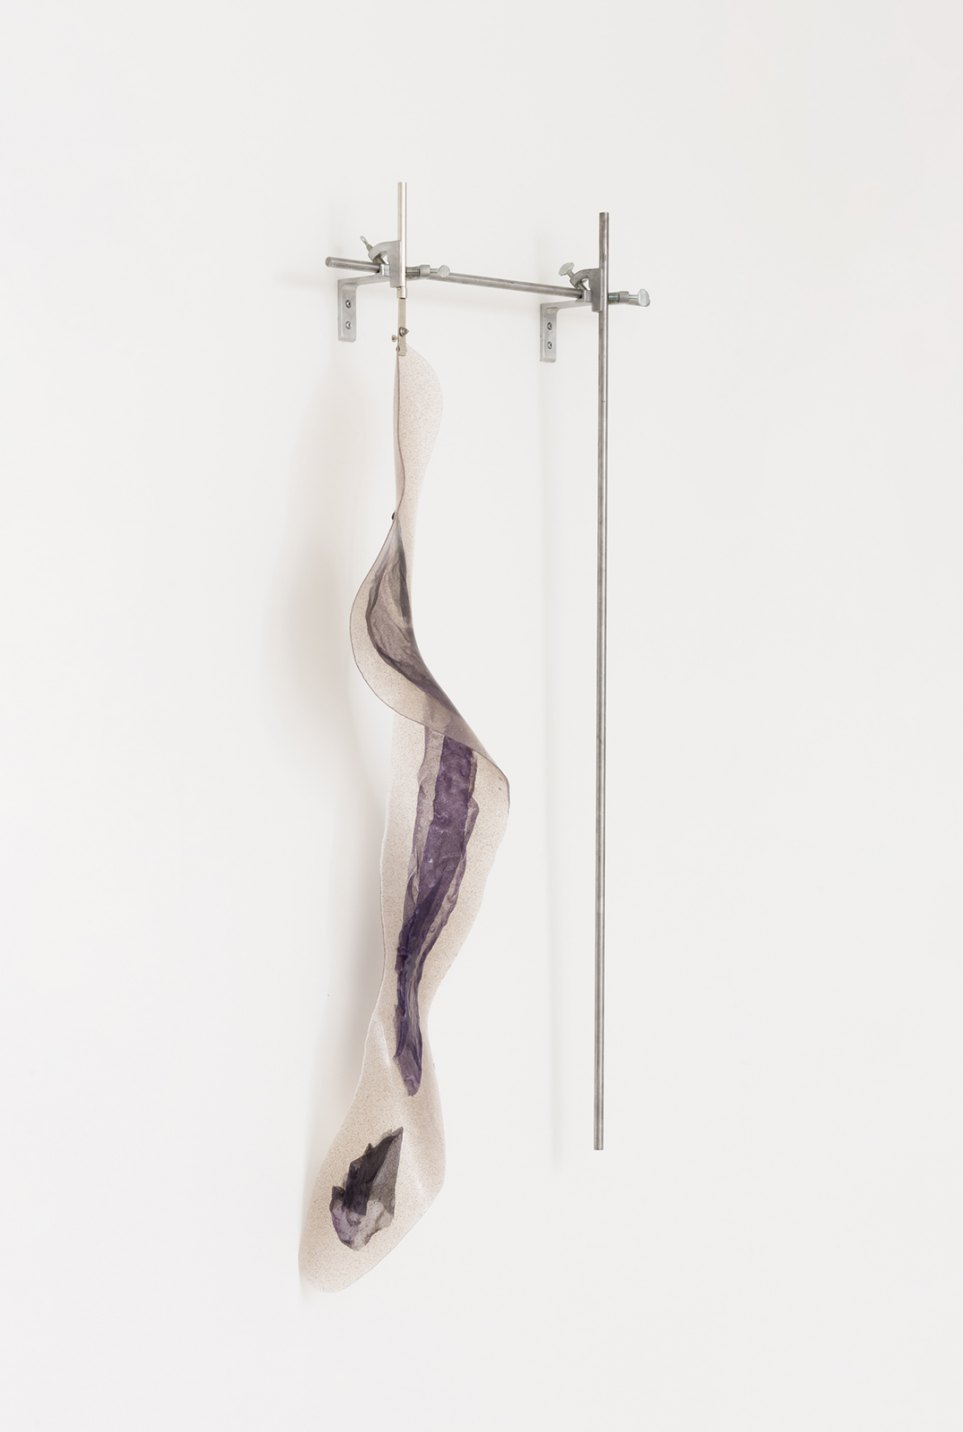 Felipe Meres, <em>Tentata Adventitium</em>, 2017, electron micrograph, pigment print on silk, açaí berry, silicone rubber, polished steel, laboratory hardware, 122 × 65 cm - Mendes Wood DM